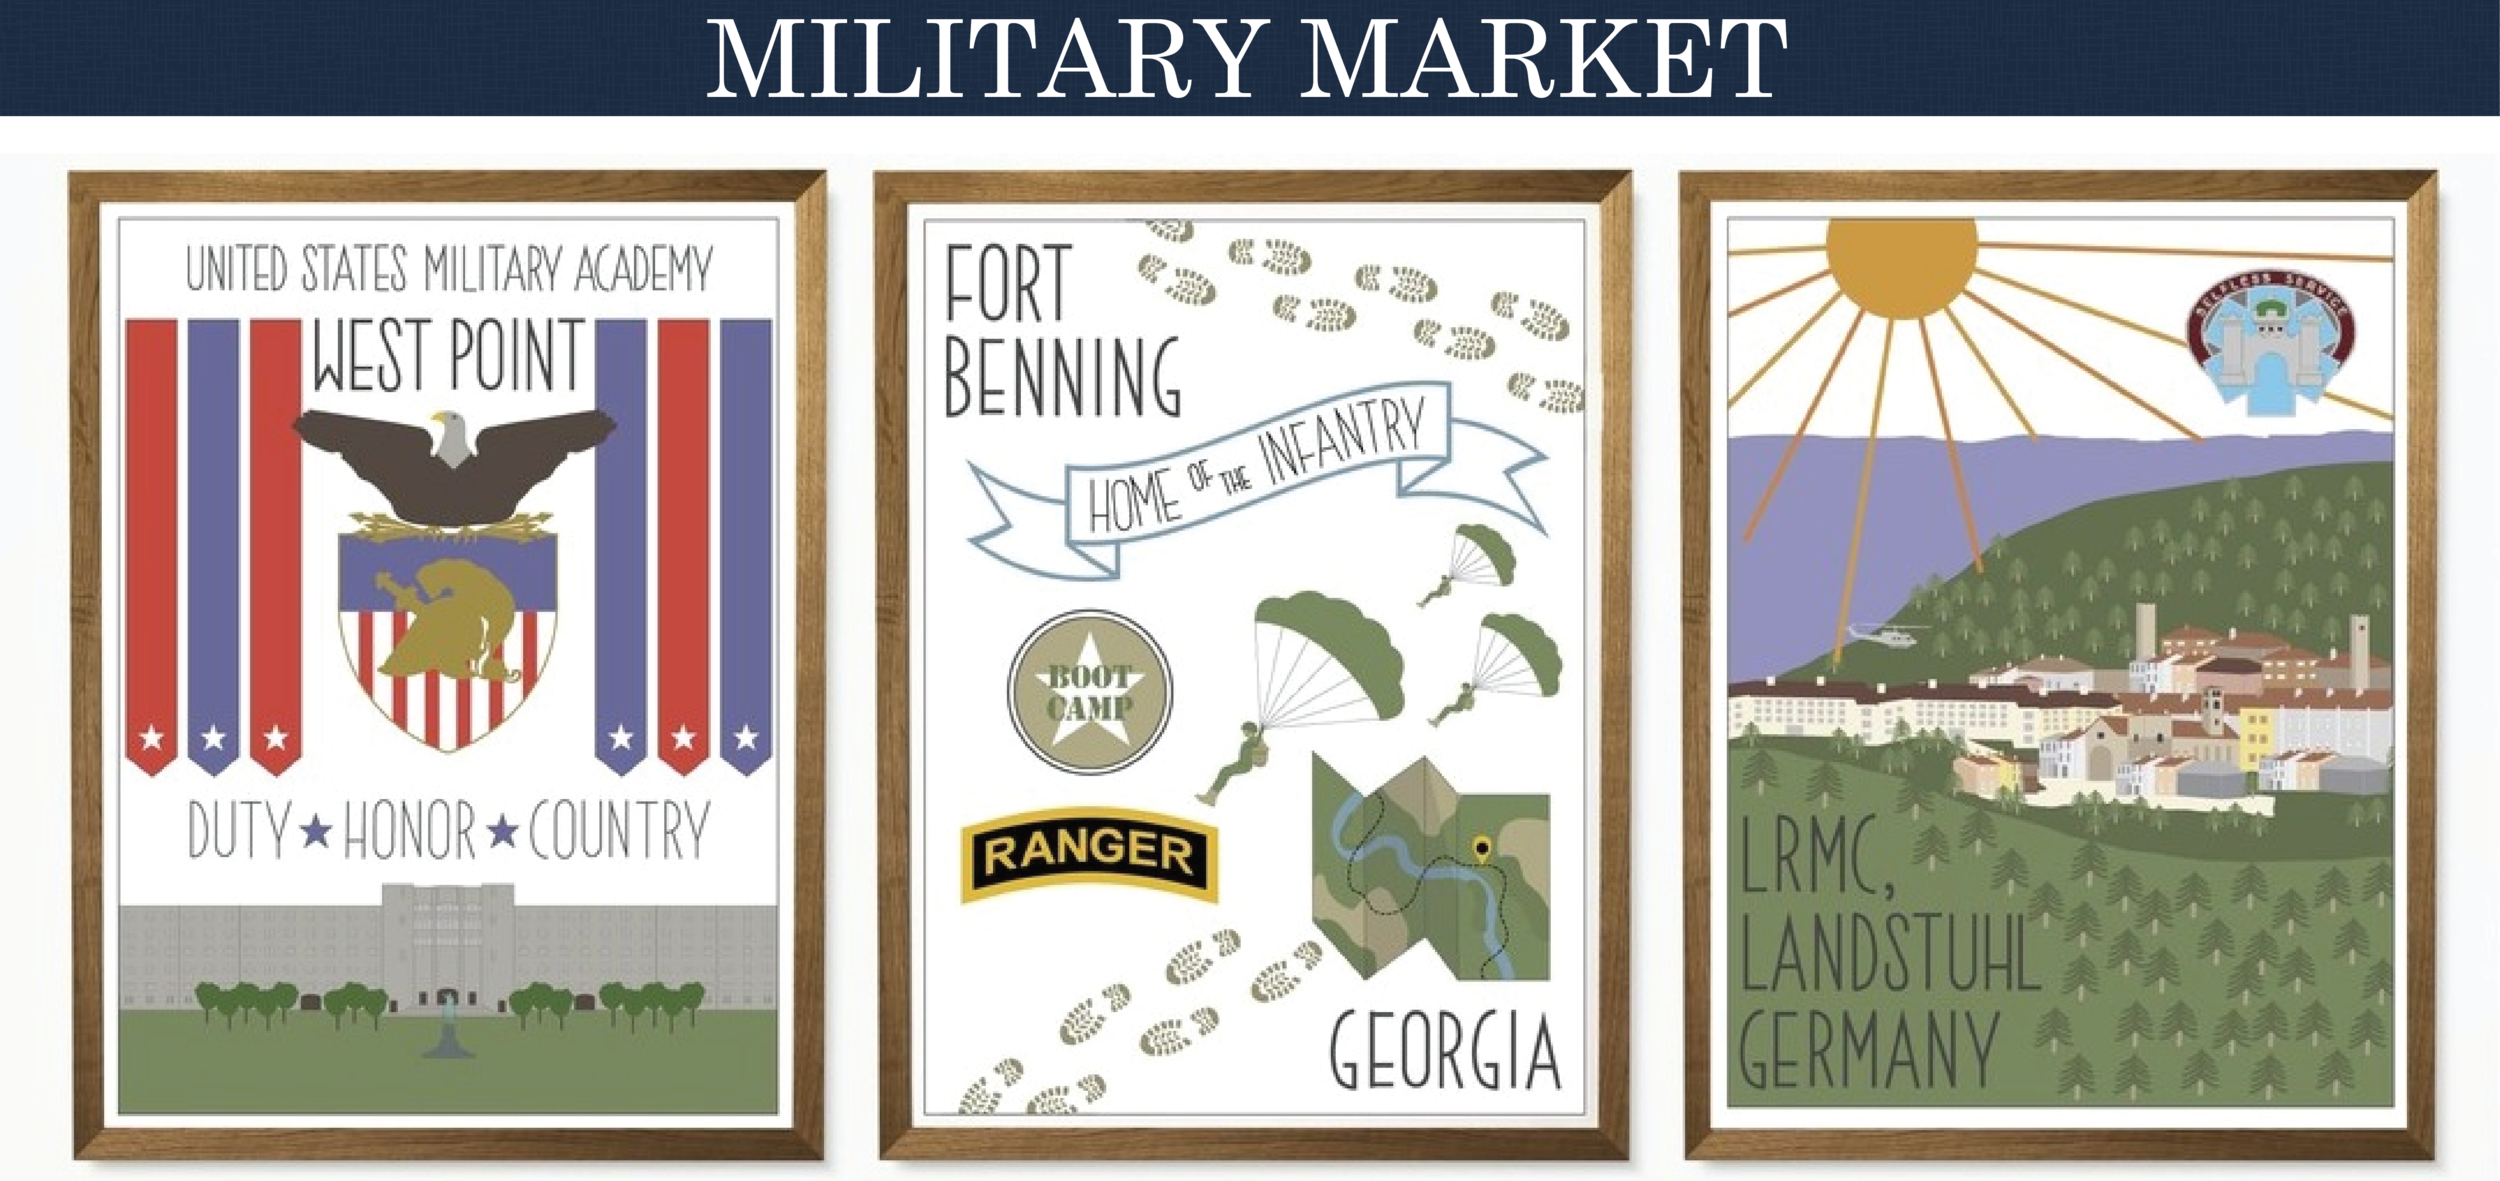 military market-02-01.png